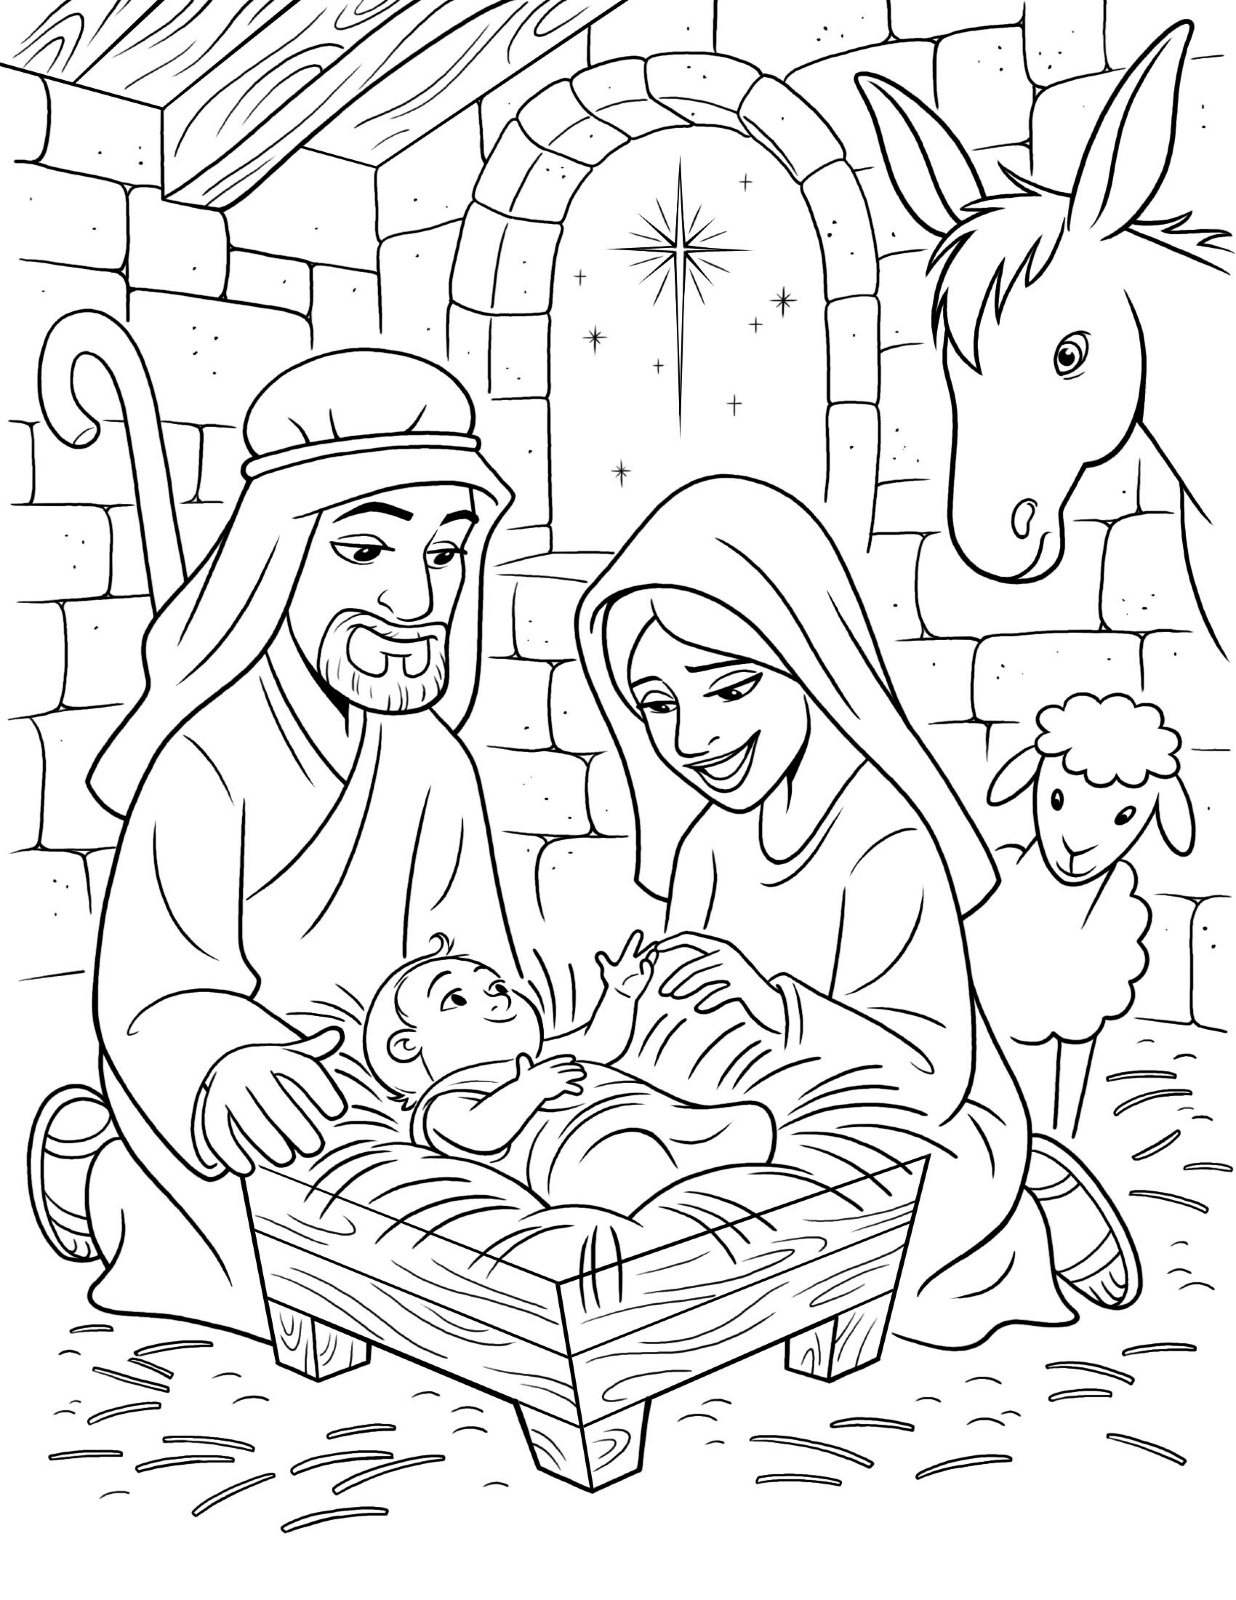 coloring pages christmas rh lds org Choose the Right LDS Coloring Pages Printable LDS Printable Primary Coloring Pages